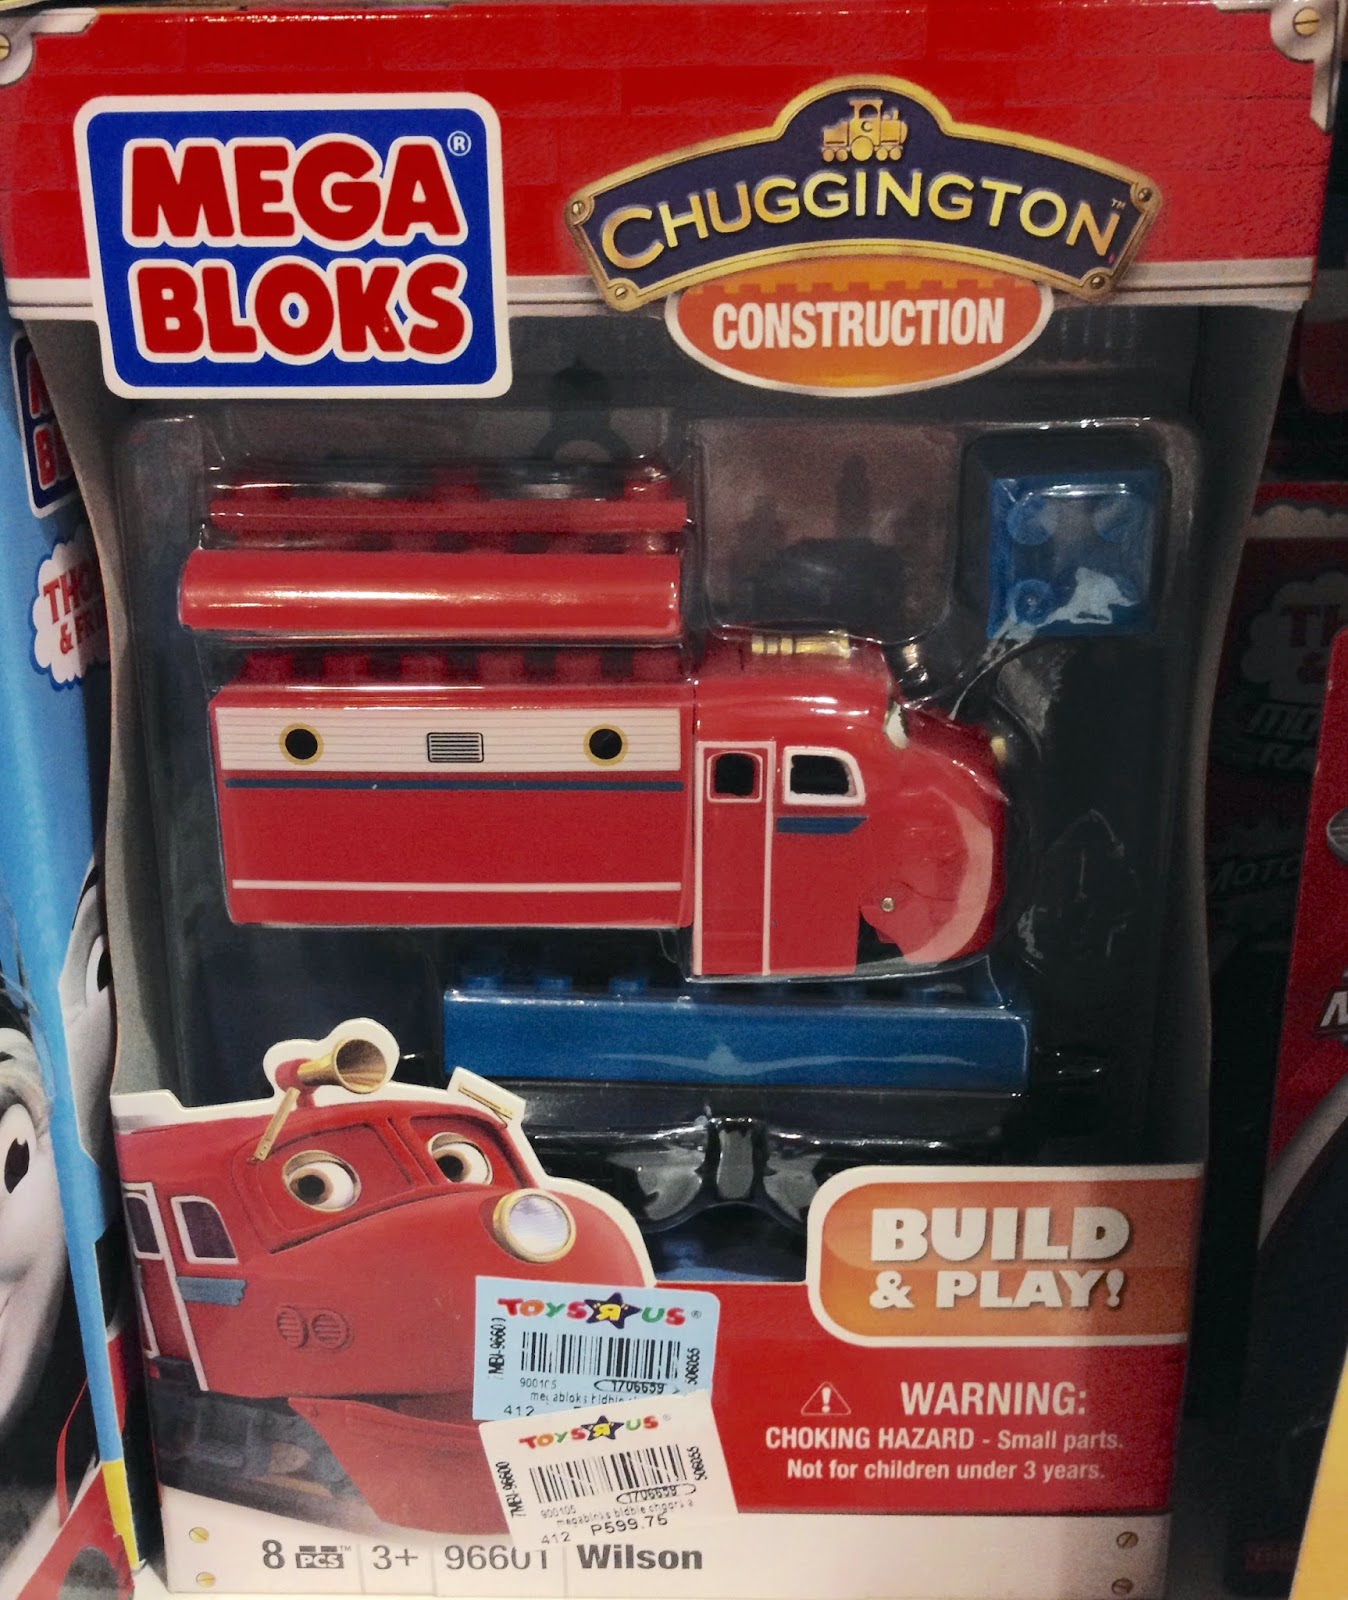 Mega Bloks Chuggington Trains Toy Sale - Wilson